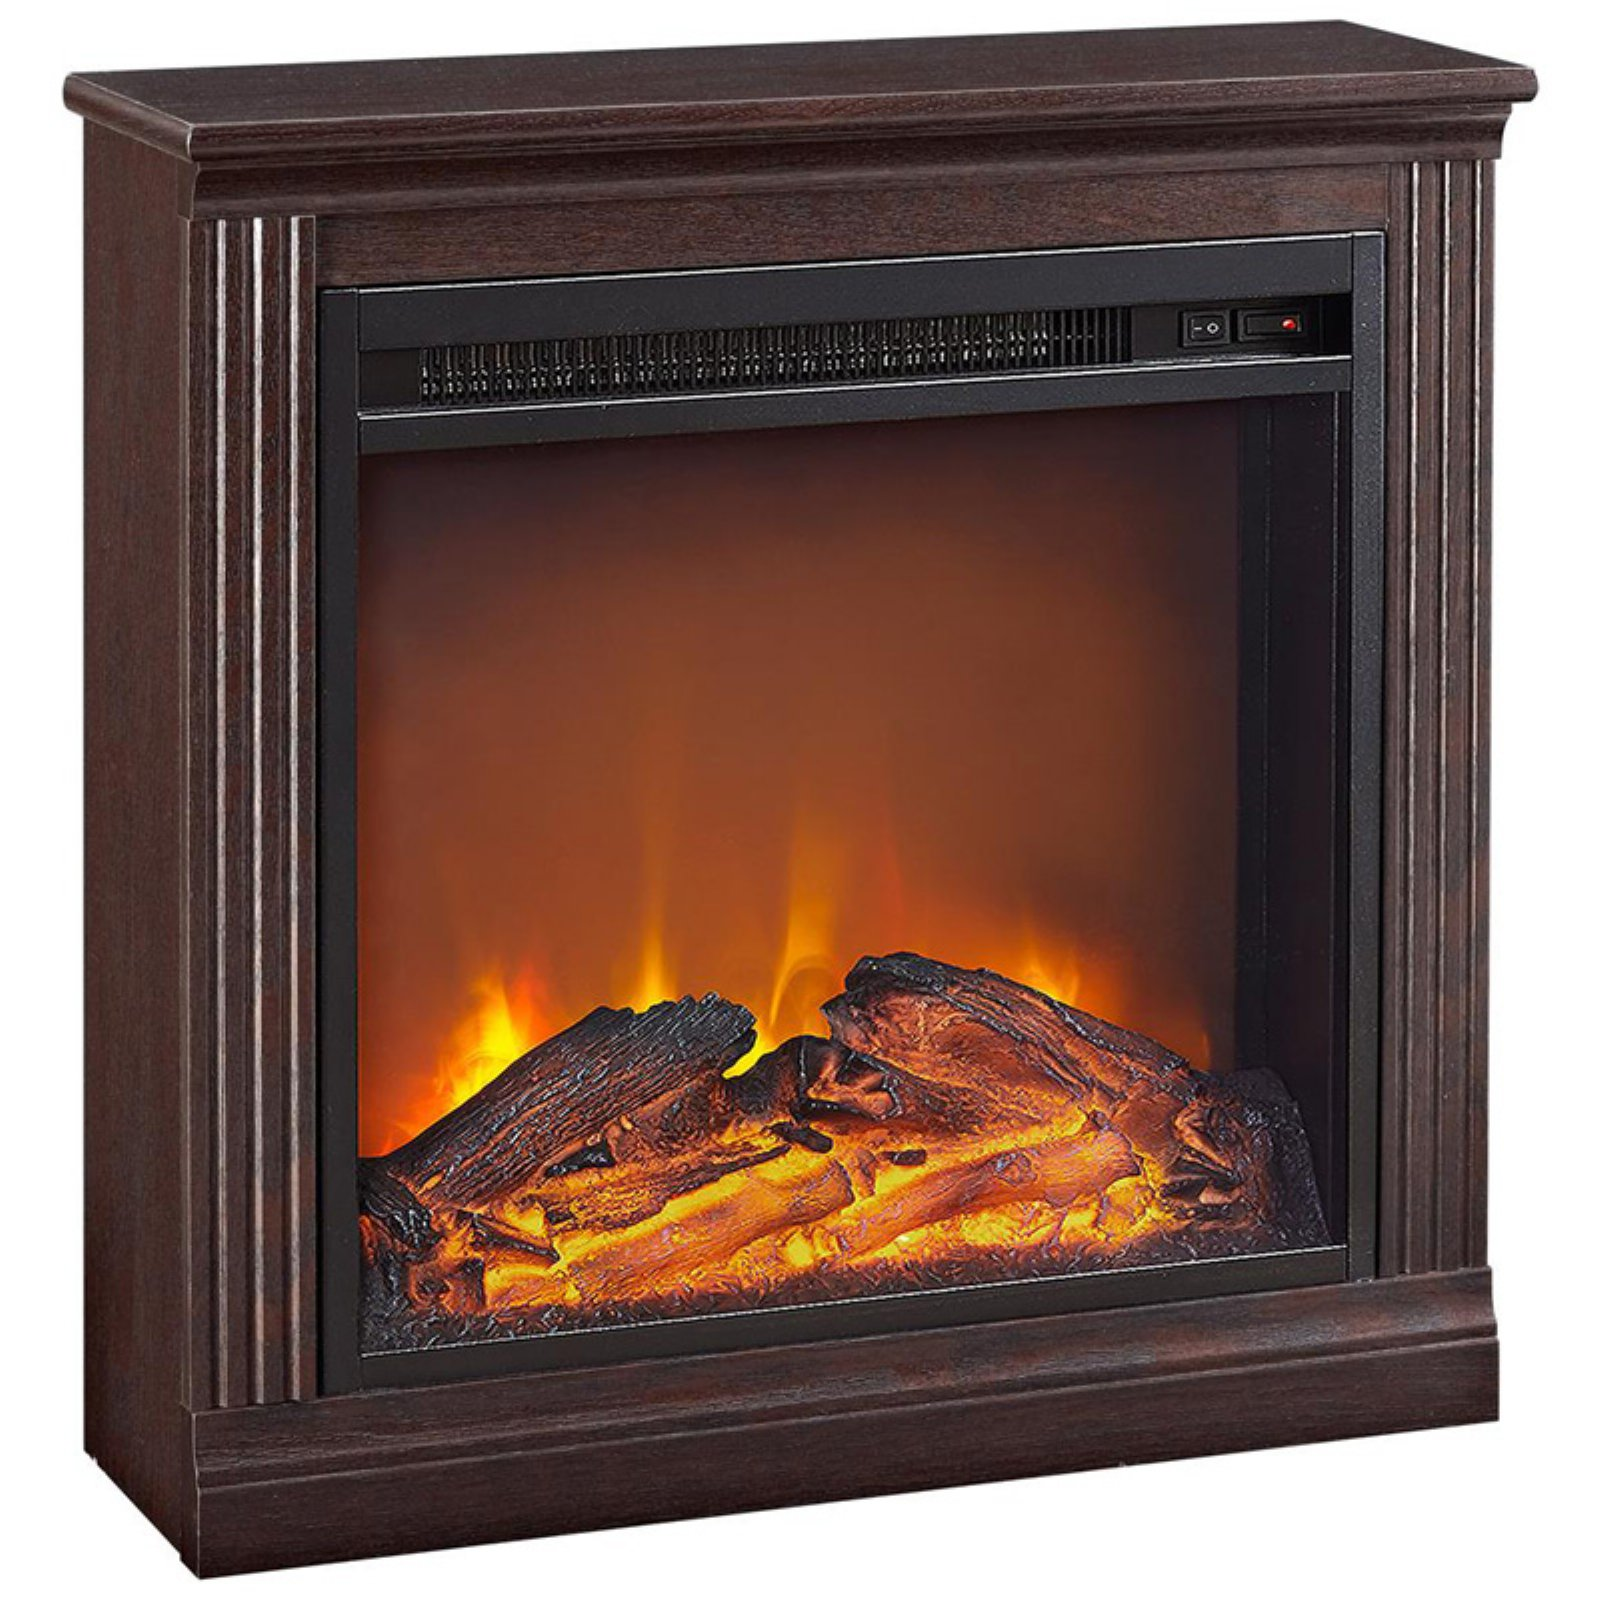 Ameriwood Home Bruxton Electric Fireplace, Multiple Colors by Ameriwood